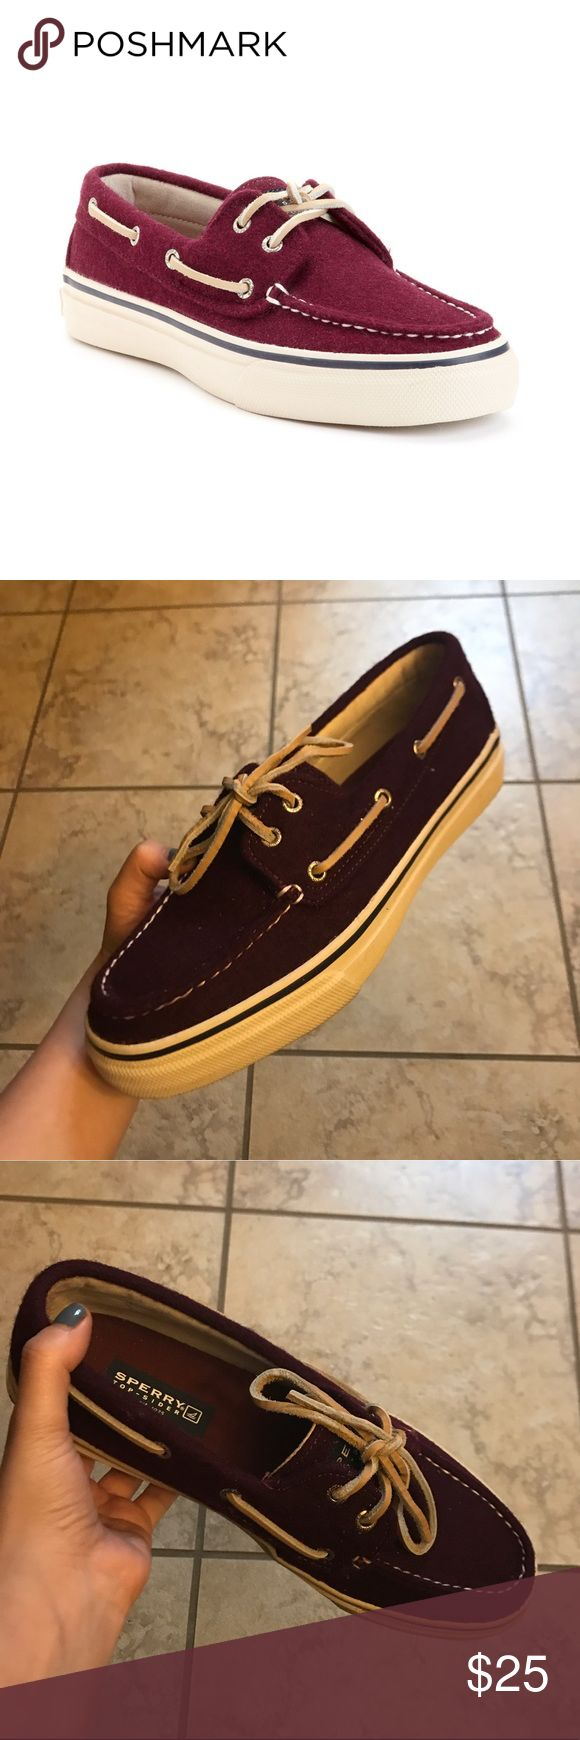 Sperry Men's Boat Shoes Sperry Bahama Wool Boat Shoes / Color: Burgundy Sperry Top-Sider Shoes Boat Shoes